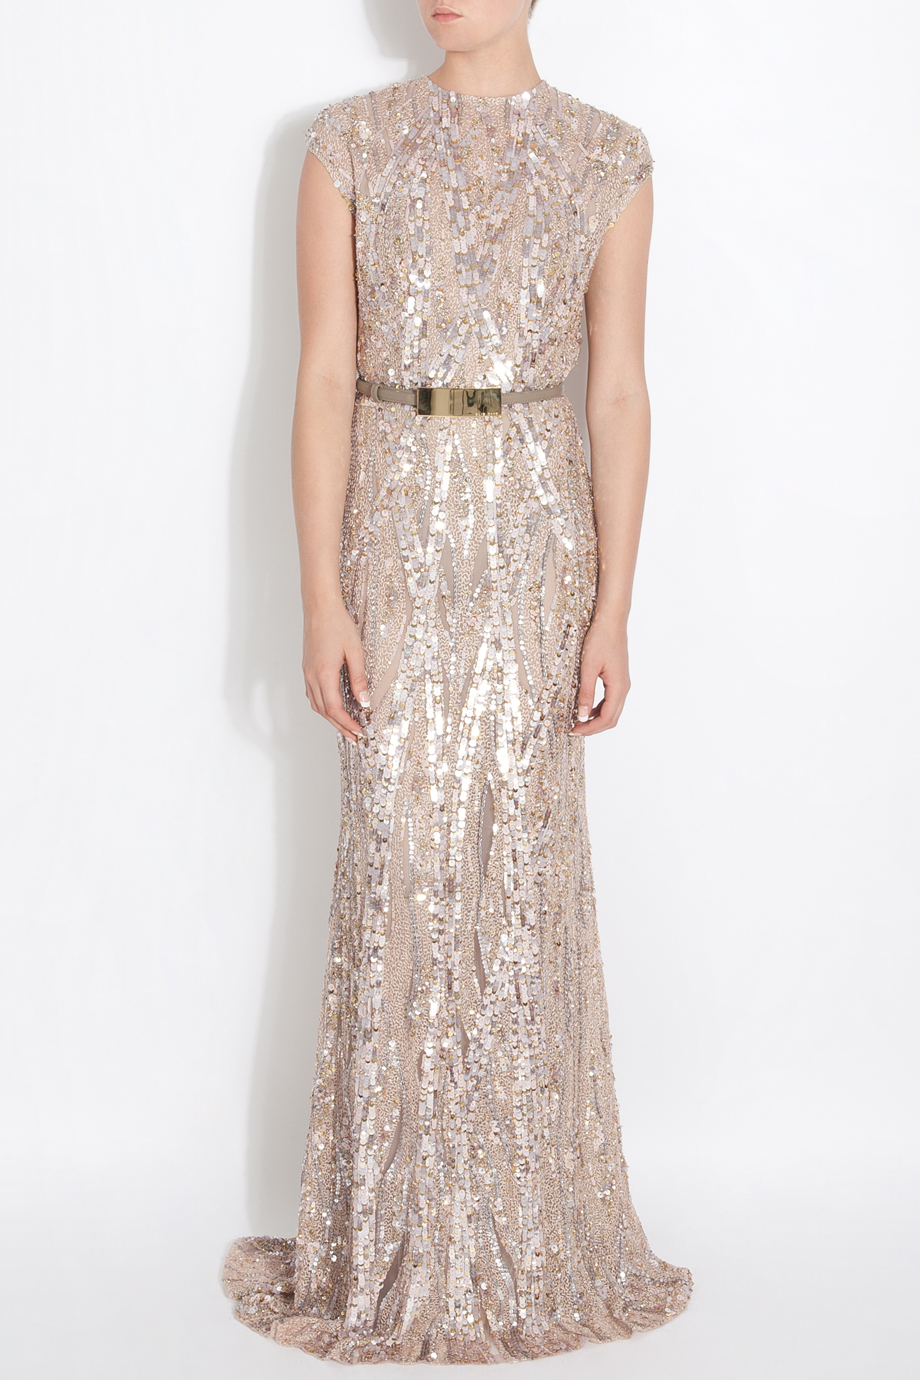 Lyst - Elie Saab Fully Sequin Gown in Pink 17a61d9da